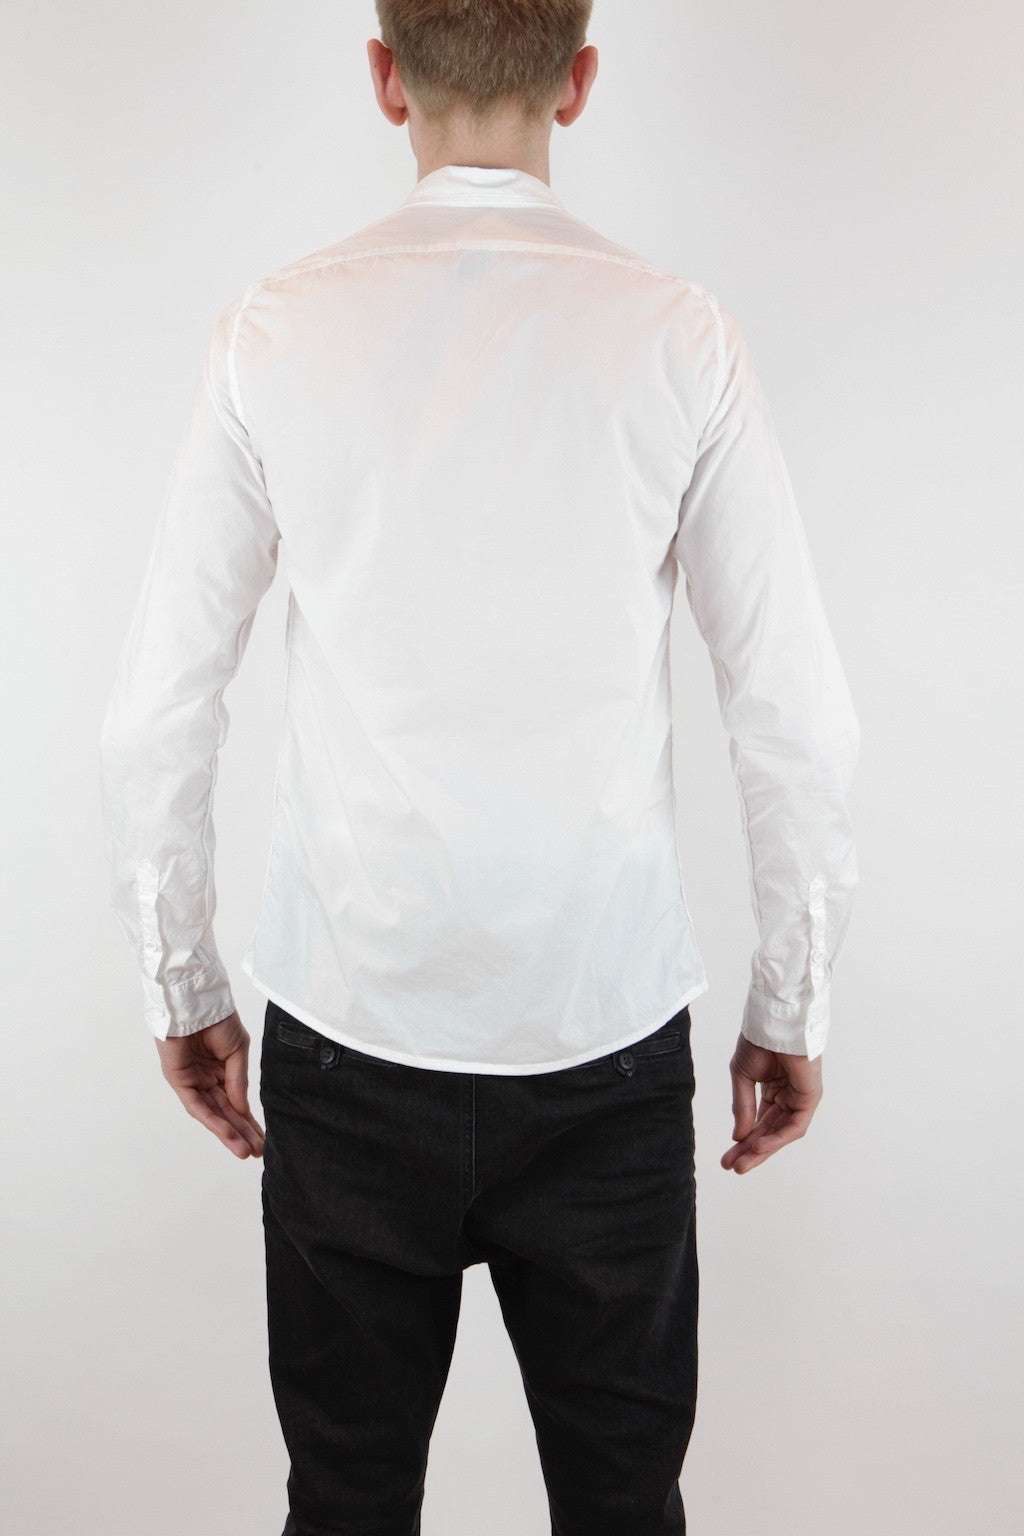 large fit shirt